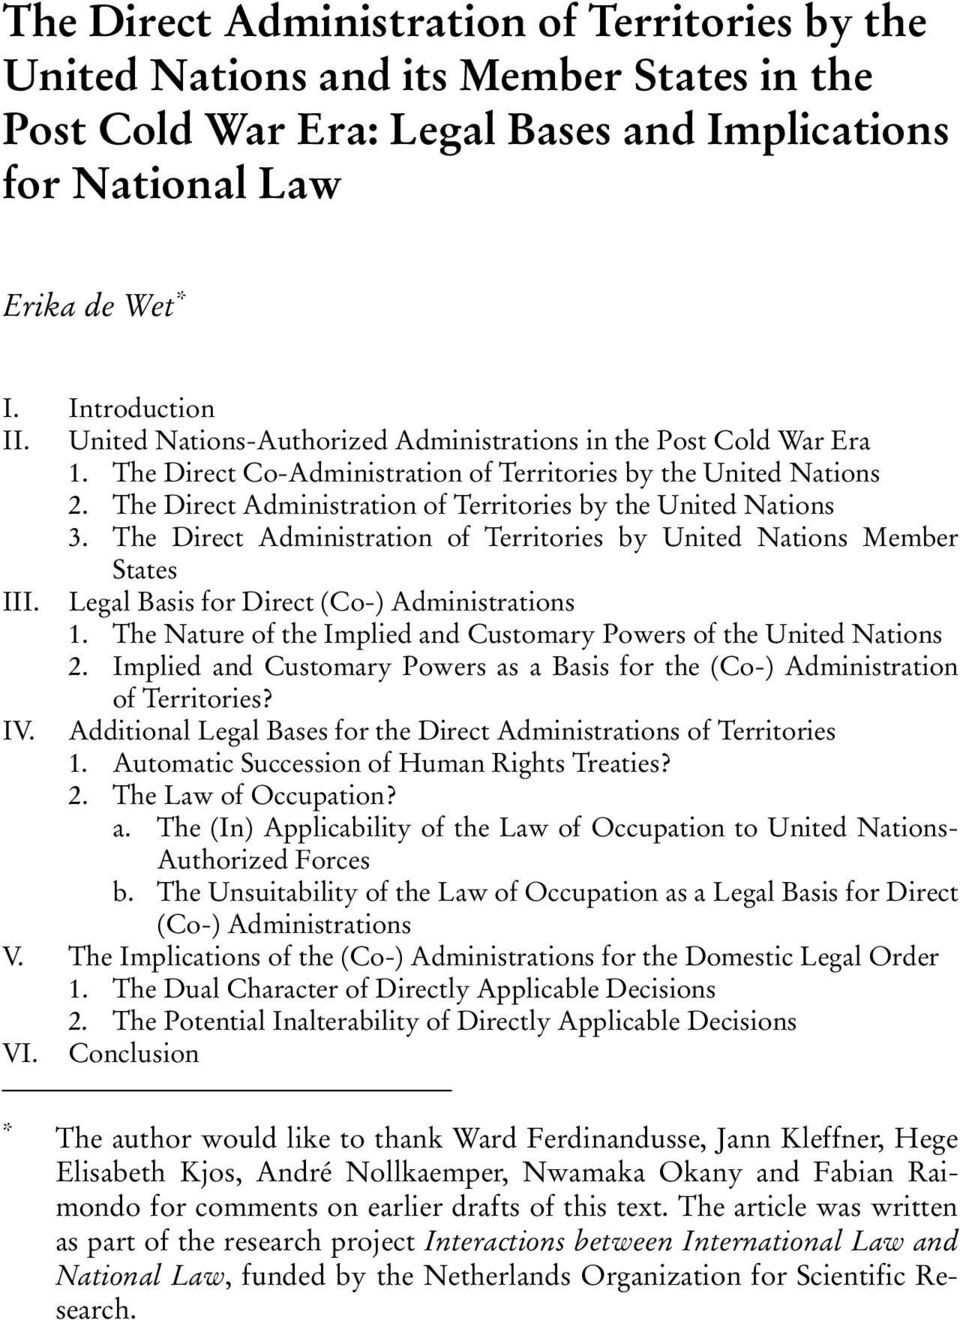 The Direct Administration of Territories by the United Nations 3. The Direct Administration of Territories by United Nations Member States III. Legal Basis for Direct (Co-) Administrations 1.